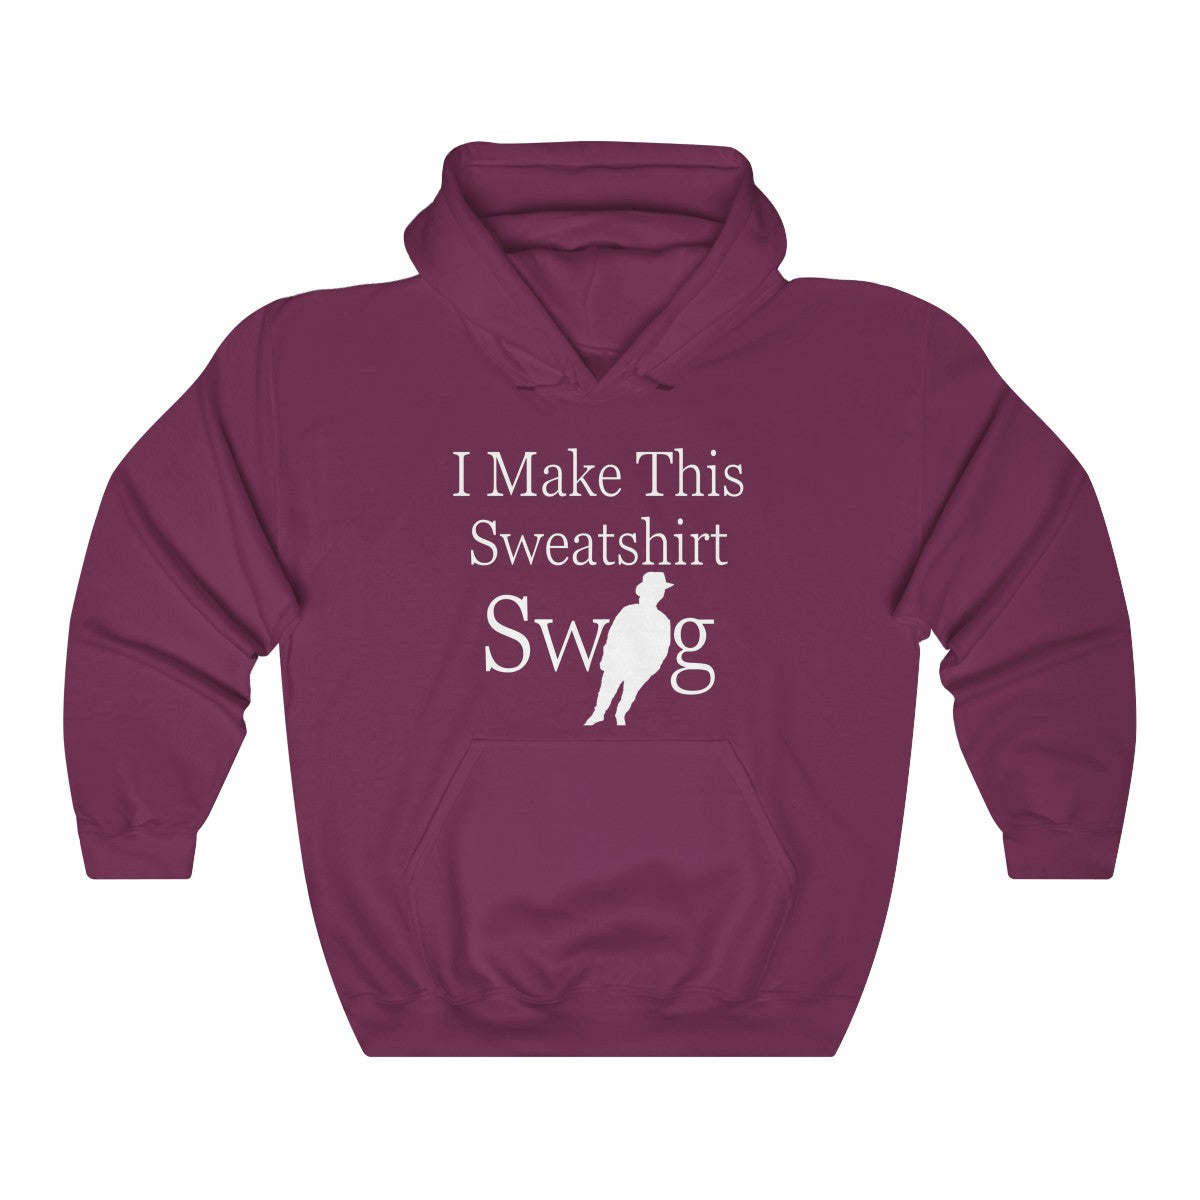 I Make This Sweatshirt Swag Heavy Blend™ Hooded Sweatshirt